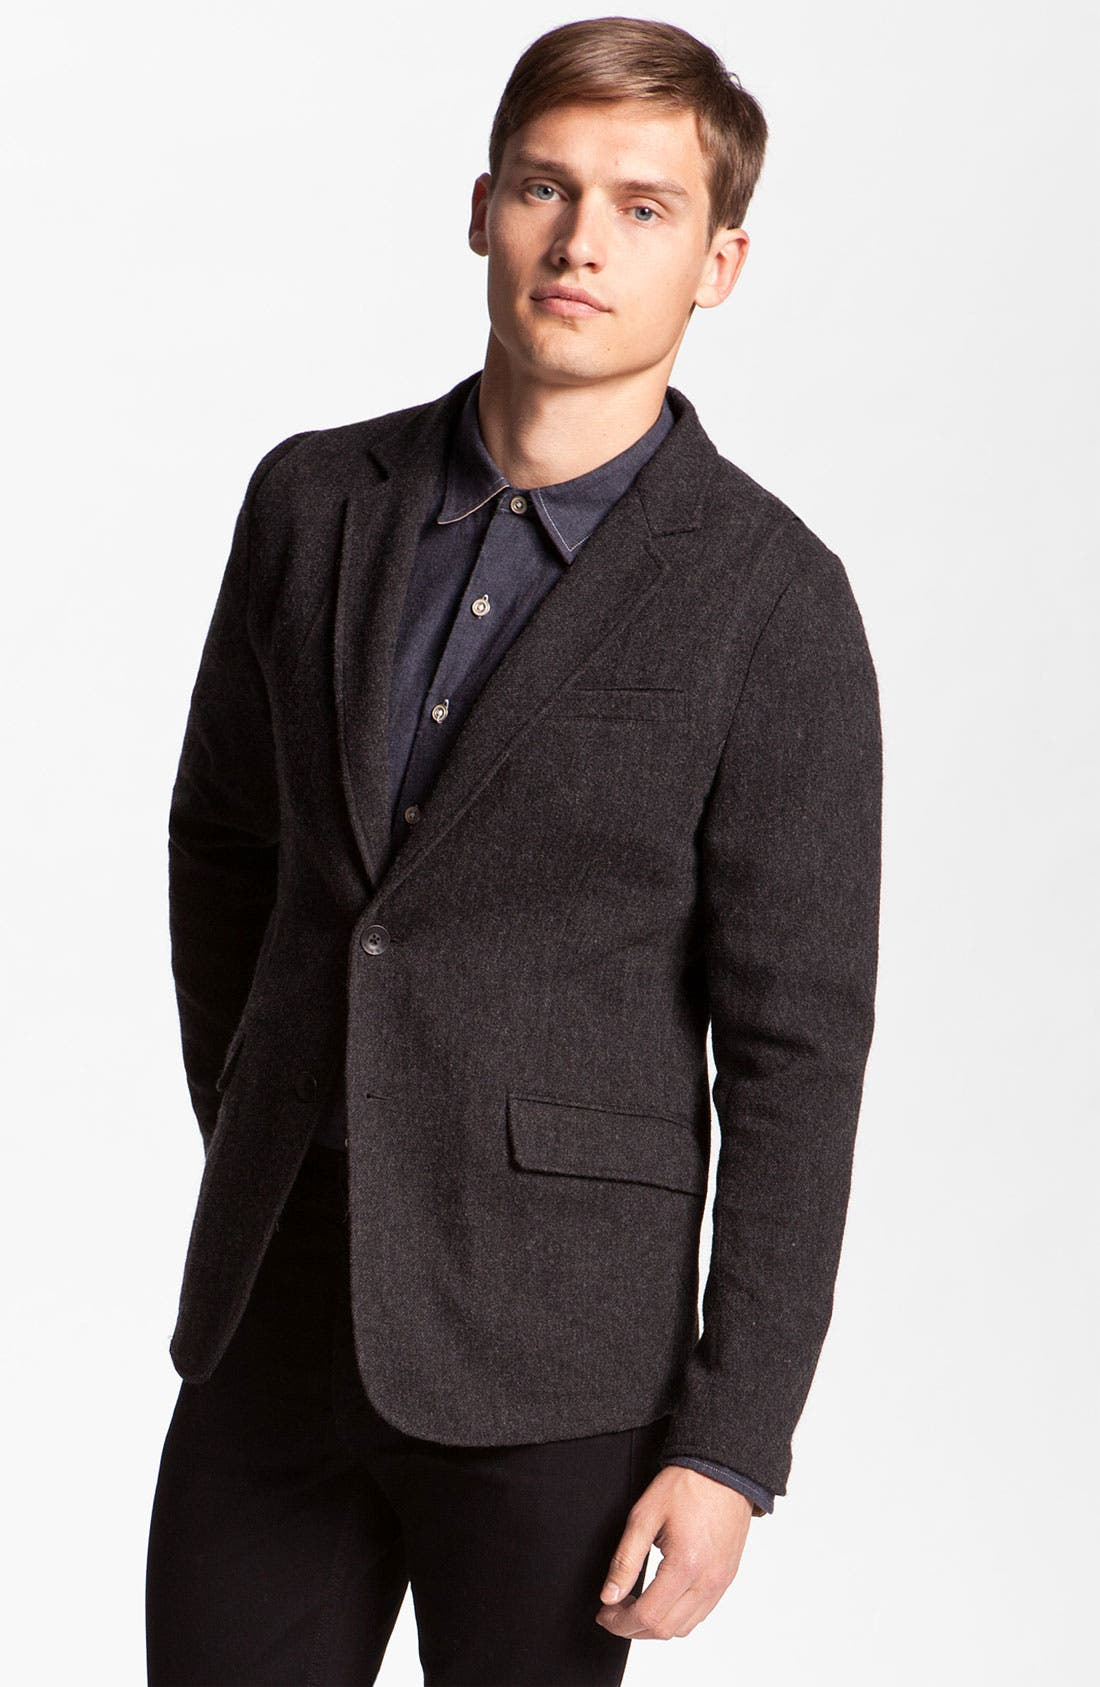 Alternate Image 1 Selected - rag & bone 'Phillips' Blazer